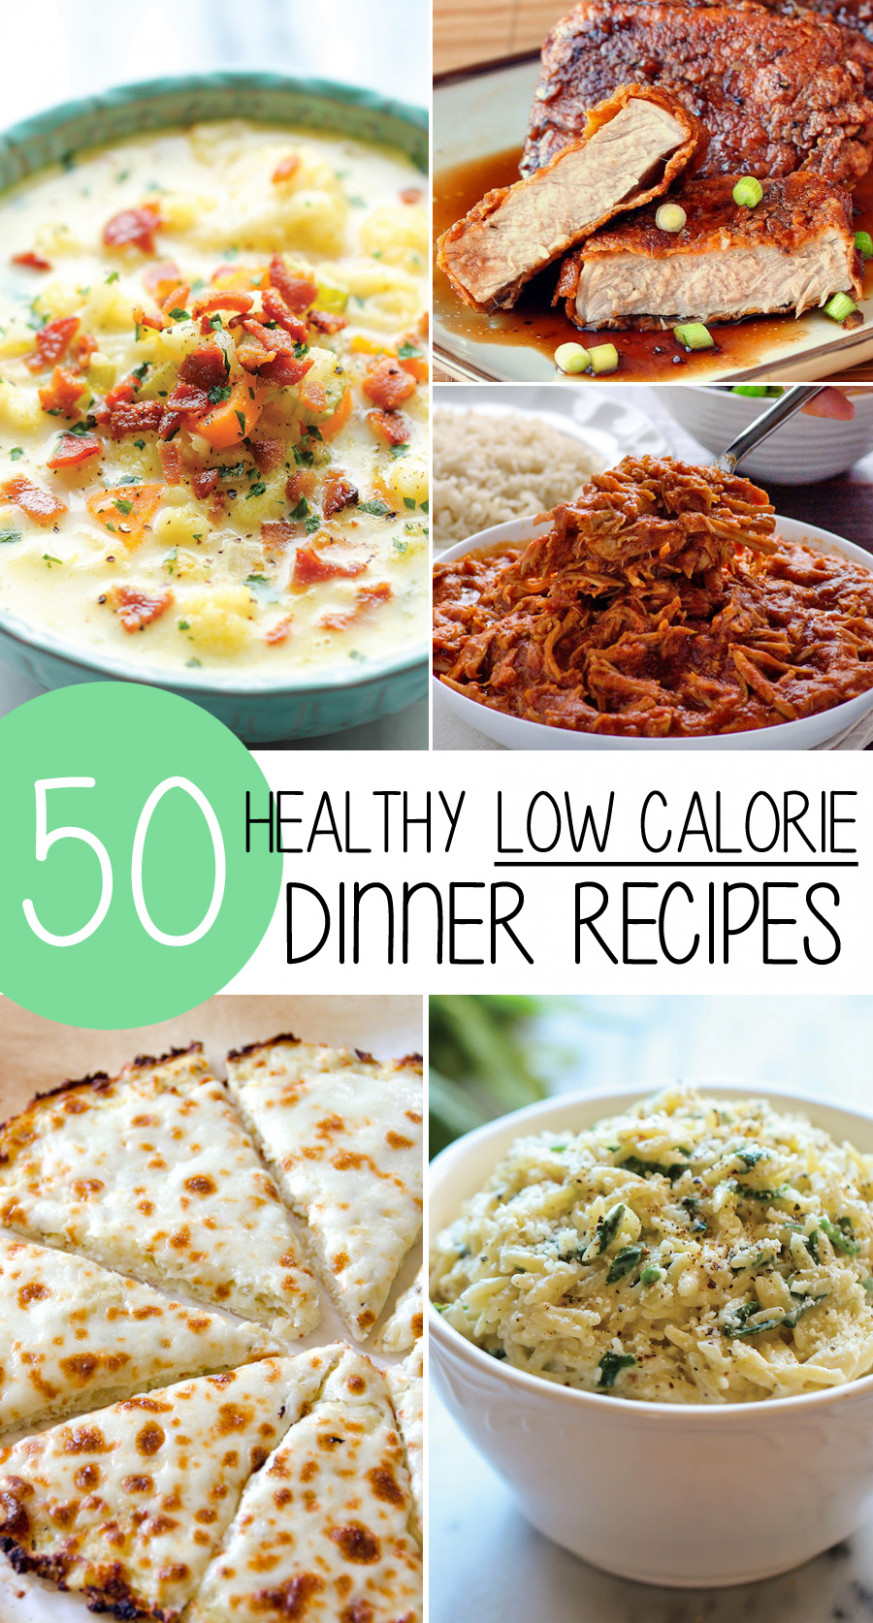 15 Healthy Low Calorie Weight Loss Dinner Recipes ..